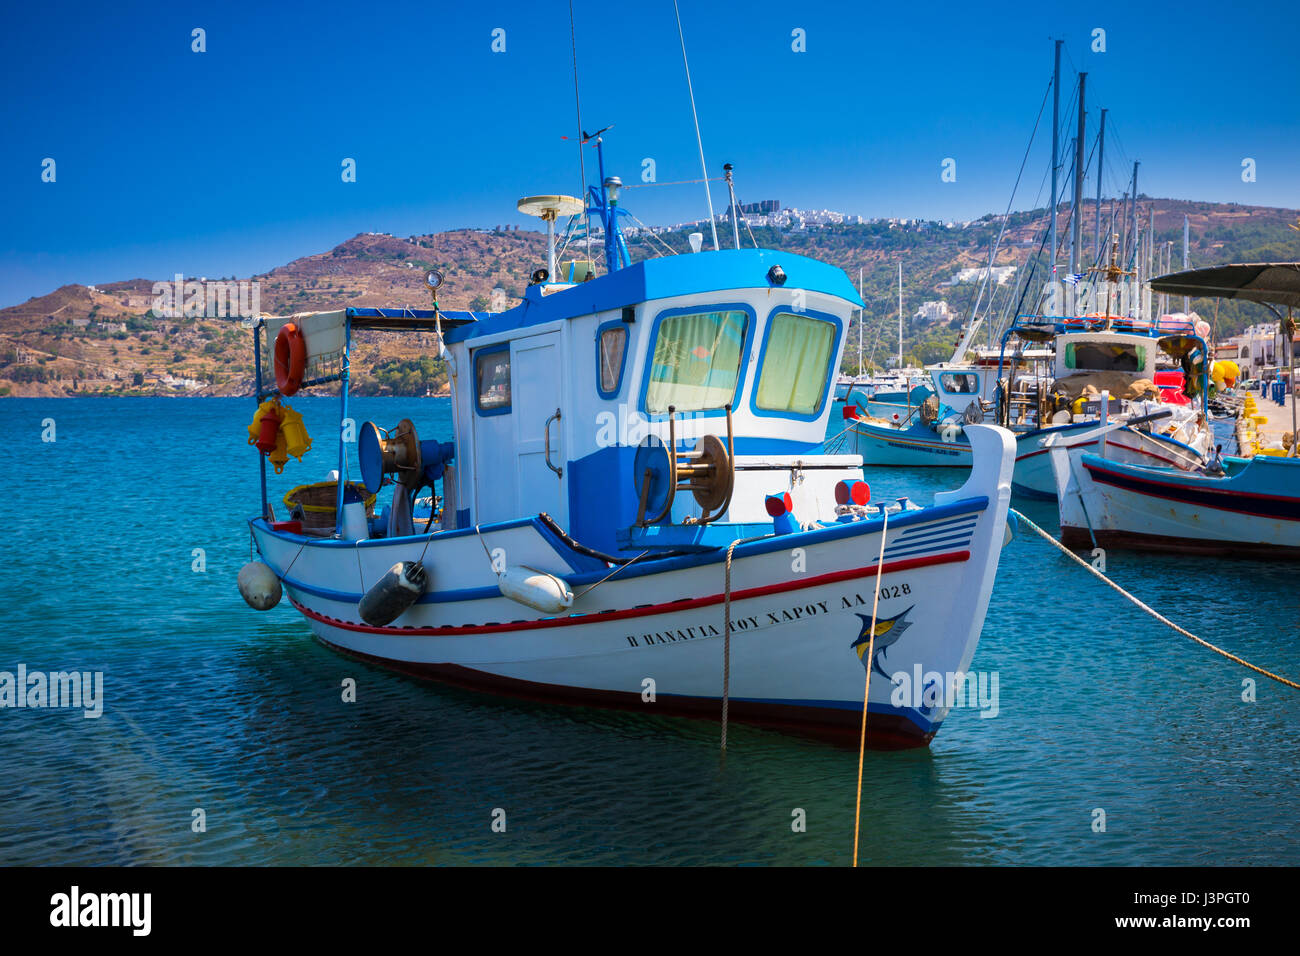 Fishing boat in the harbor on the greek island of Patmos - Stock Image